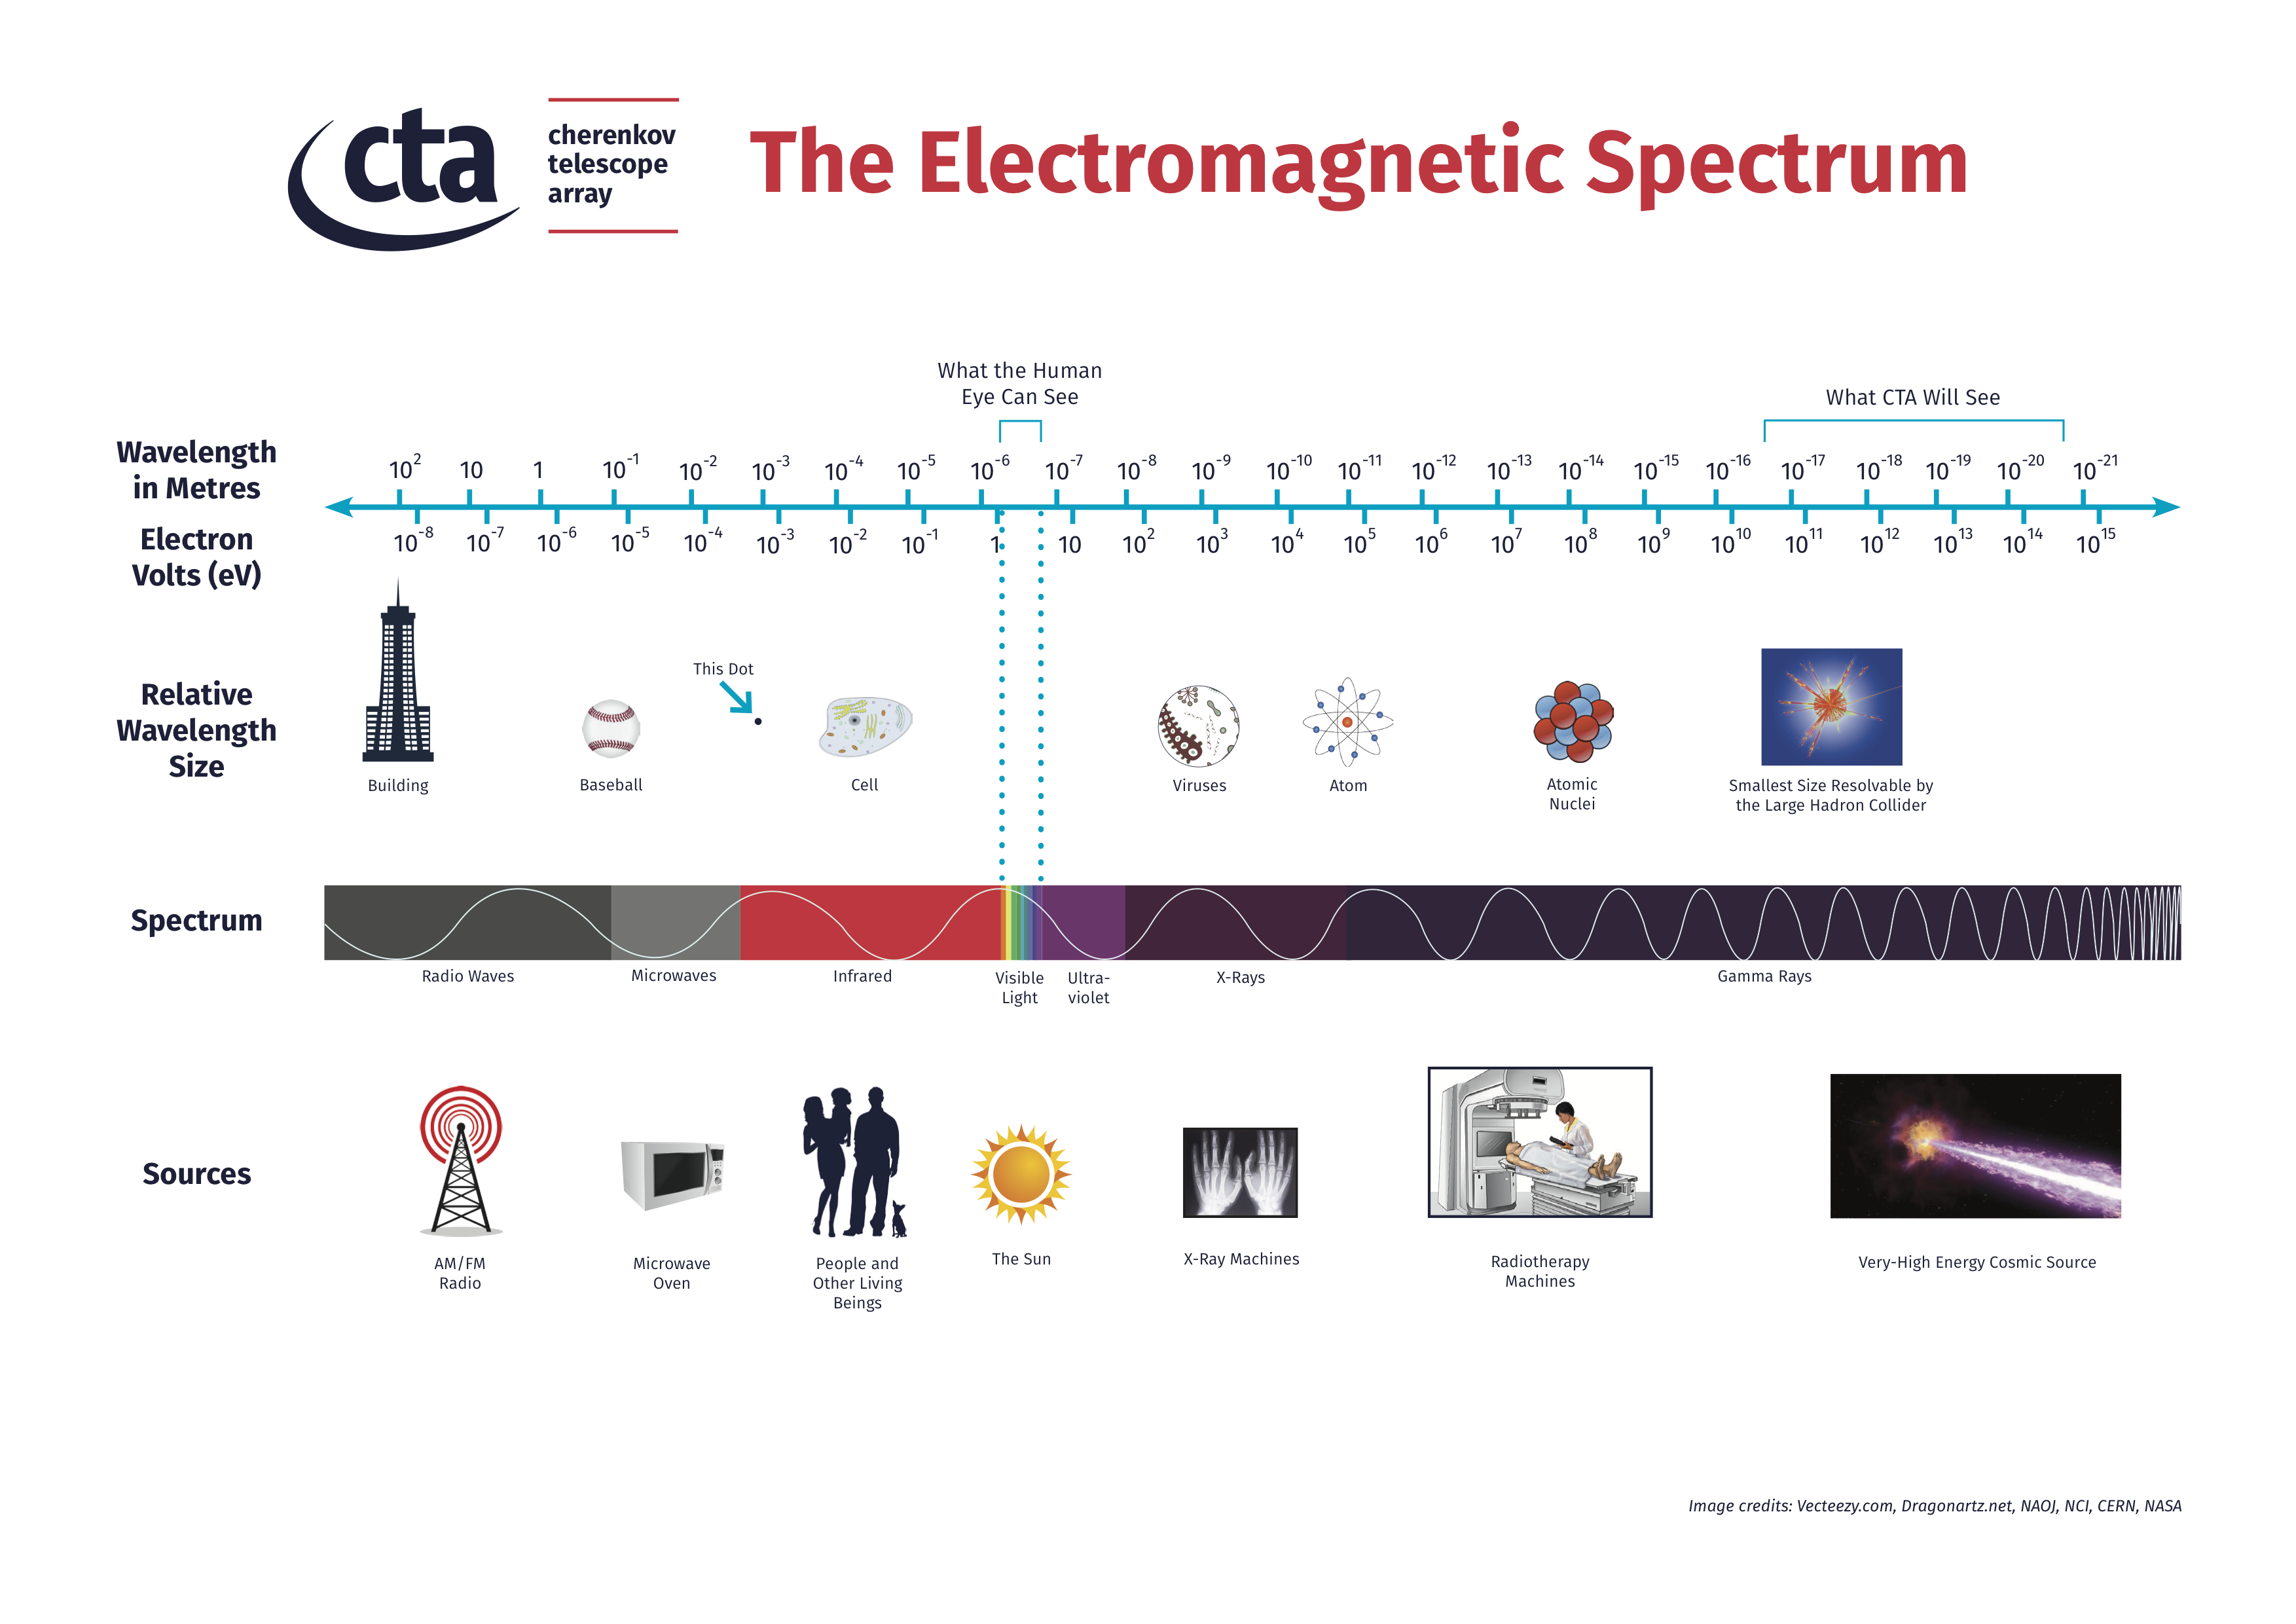 the electromagnetic waves and spectrum The electromagnetic spectrum this flipchart has been adapted from original work, distributed by download or viewed on the internet, as a free gcse physics teaching  all electromagnetic waves travel at the same speed - 300,000,000 metres per second, which is the speed of light.